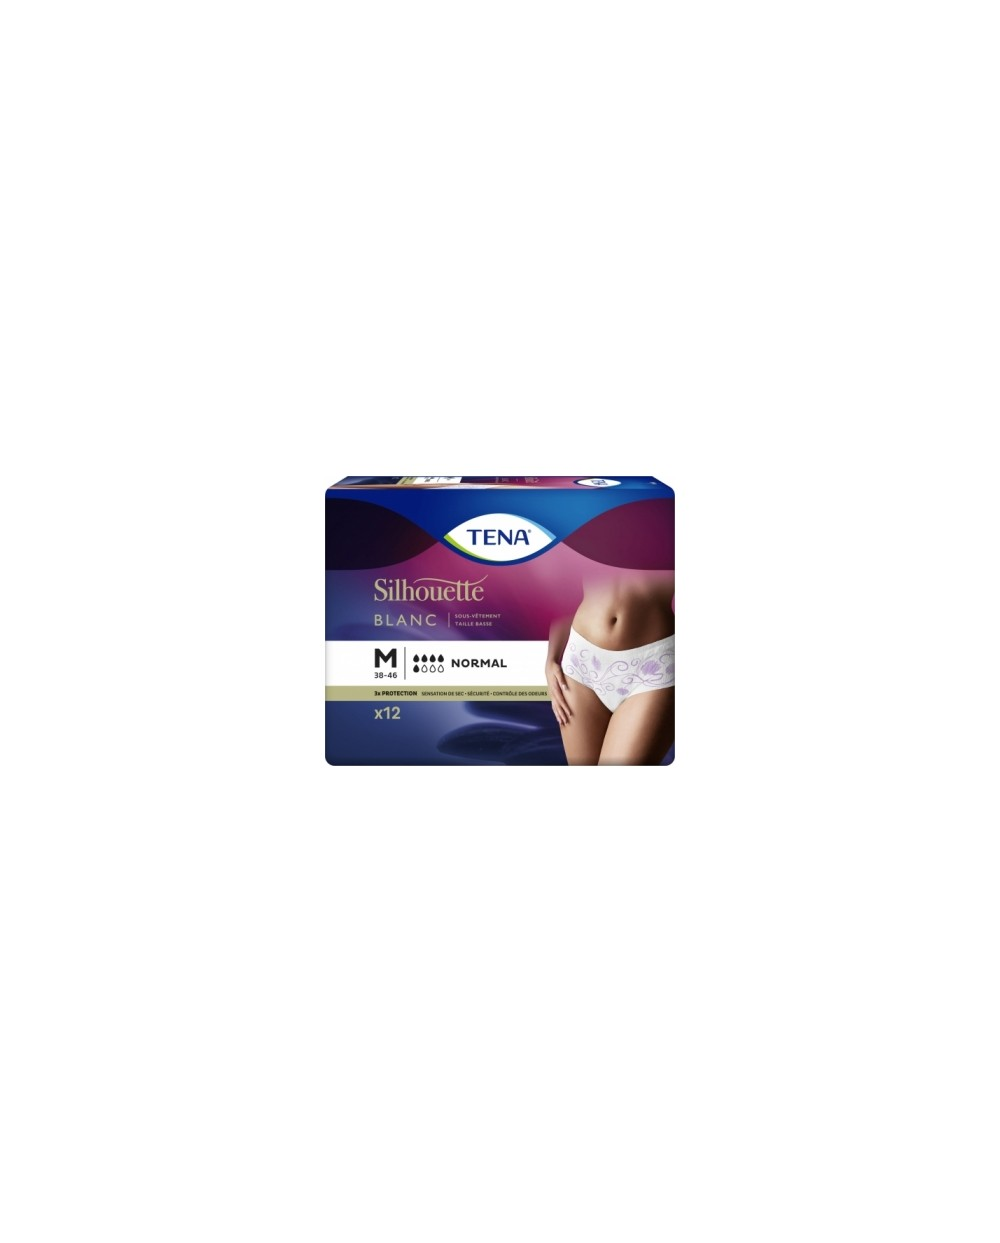 Tena Silhouette Normal Blanc Taille basse Medium - 12 protections